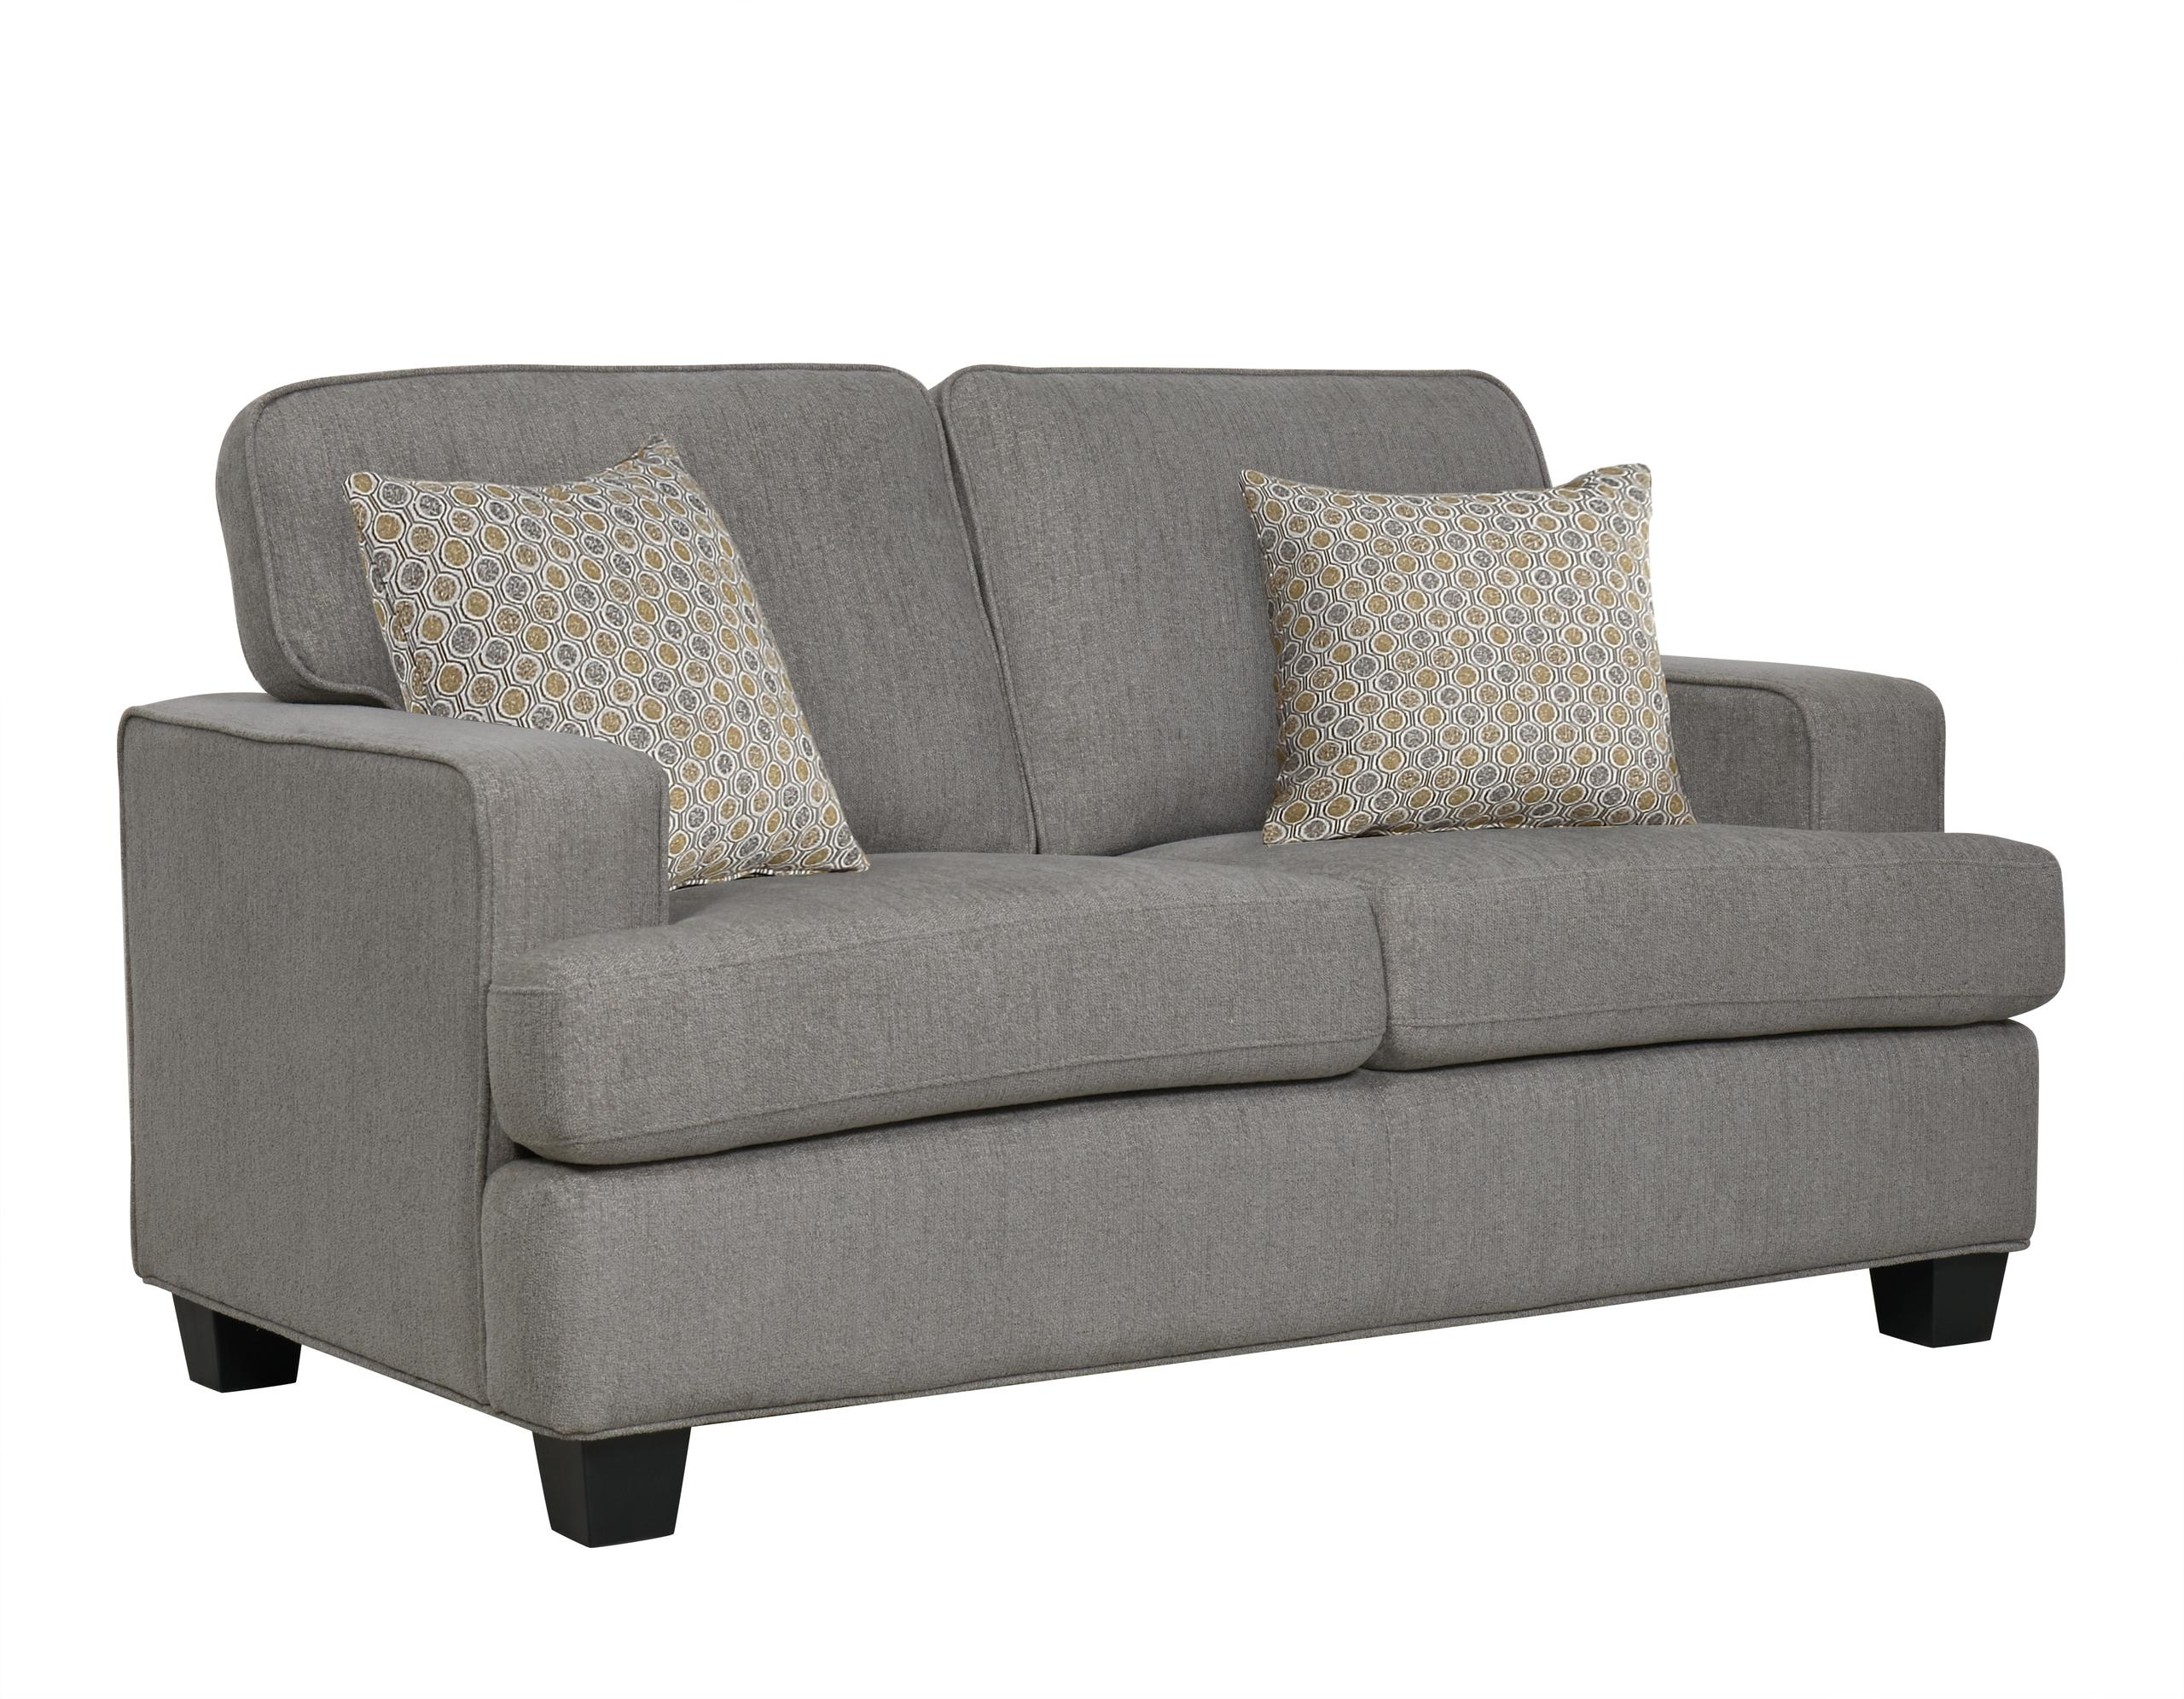 Emerald Home FurnishingsCarter Loveseat, Gray U3477-01-43